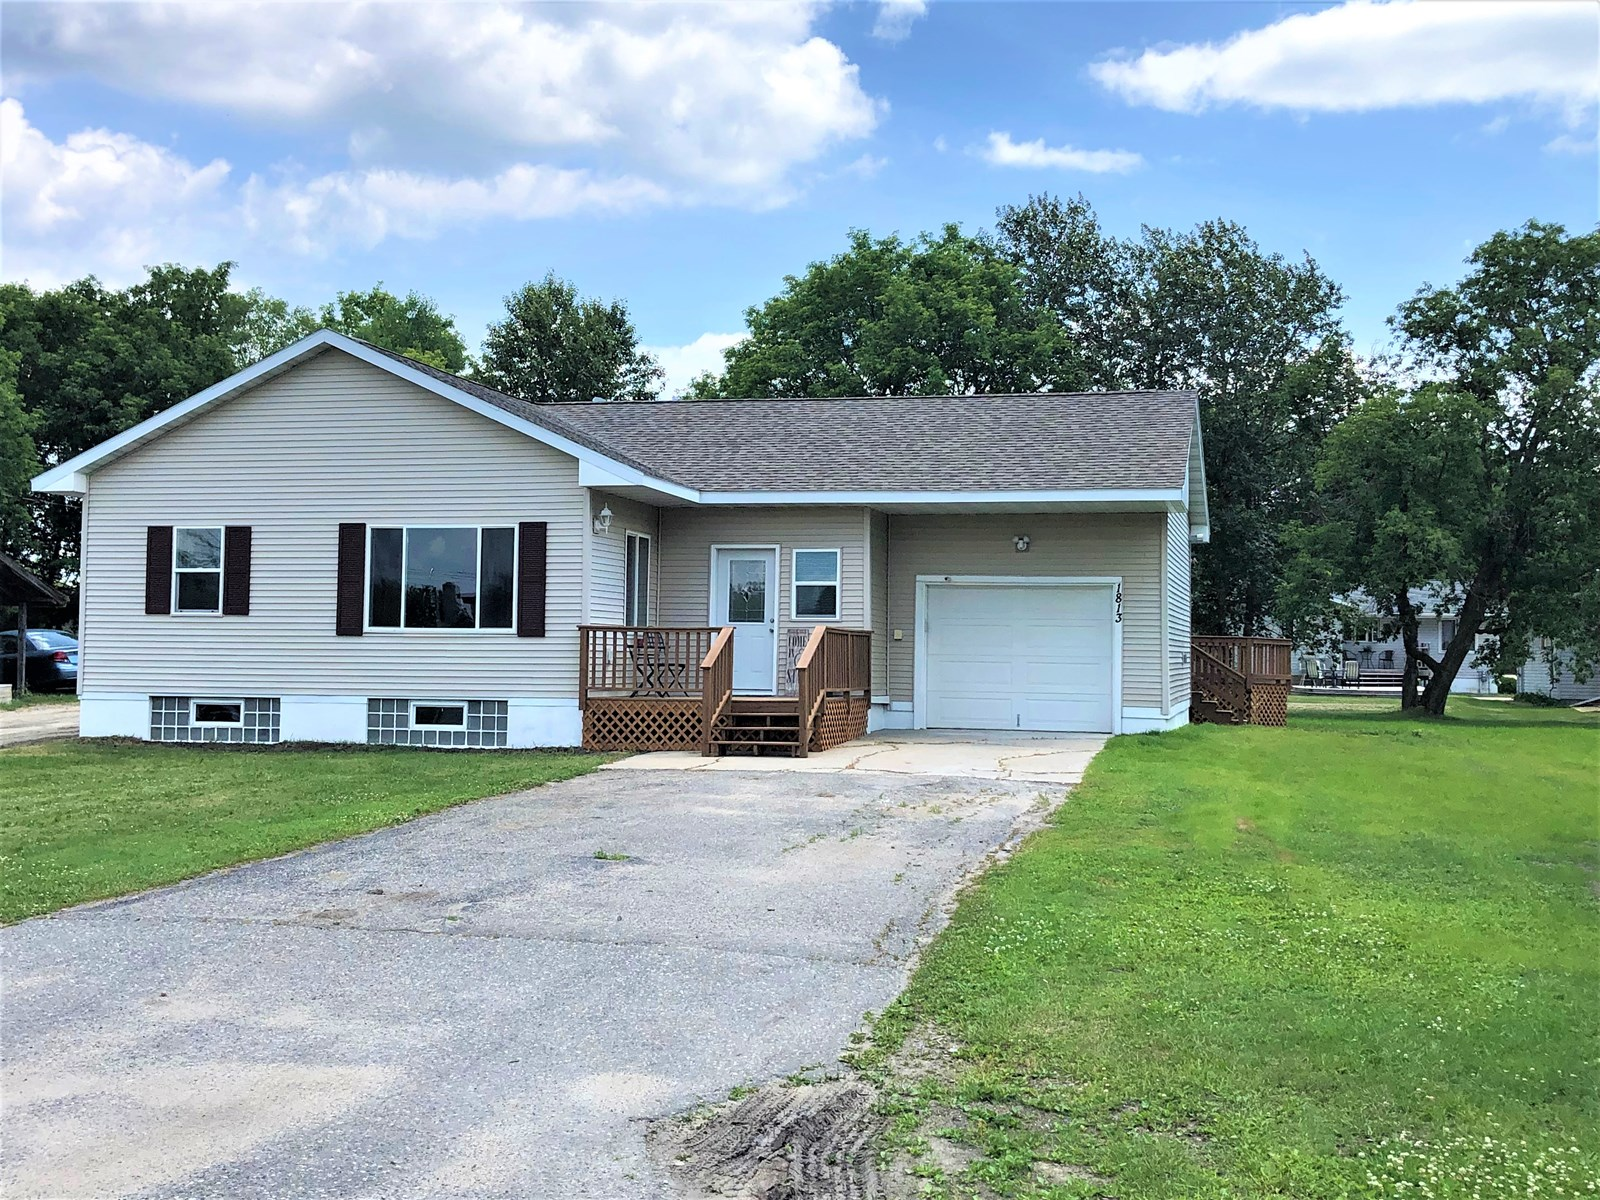 Home in town for sale in Int'l Falls, MN Koochiching County